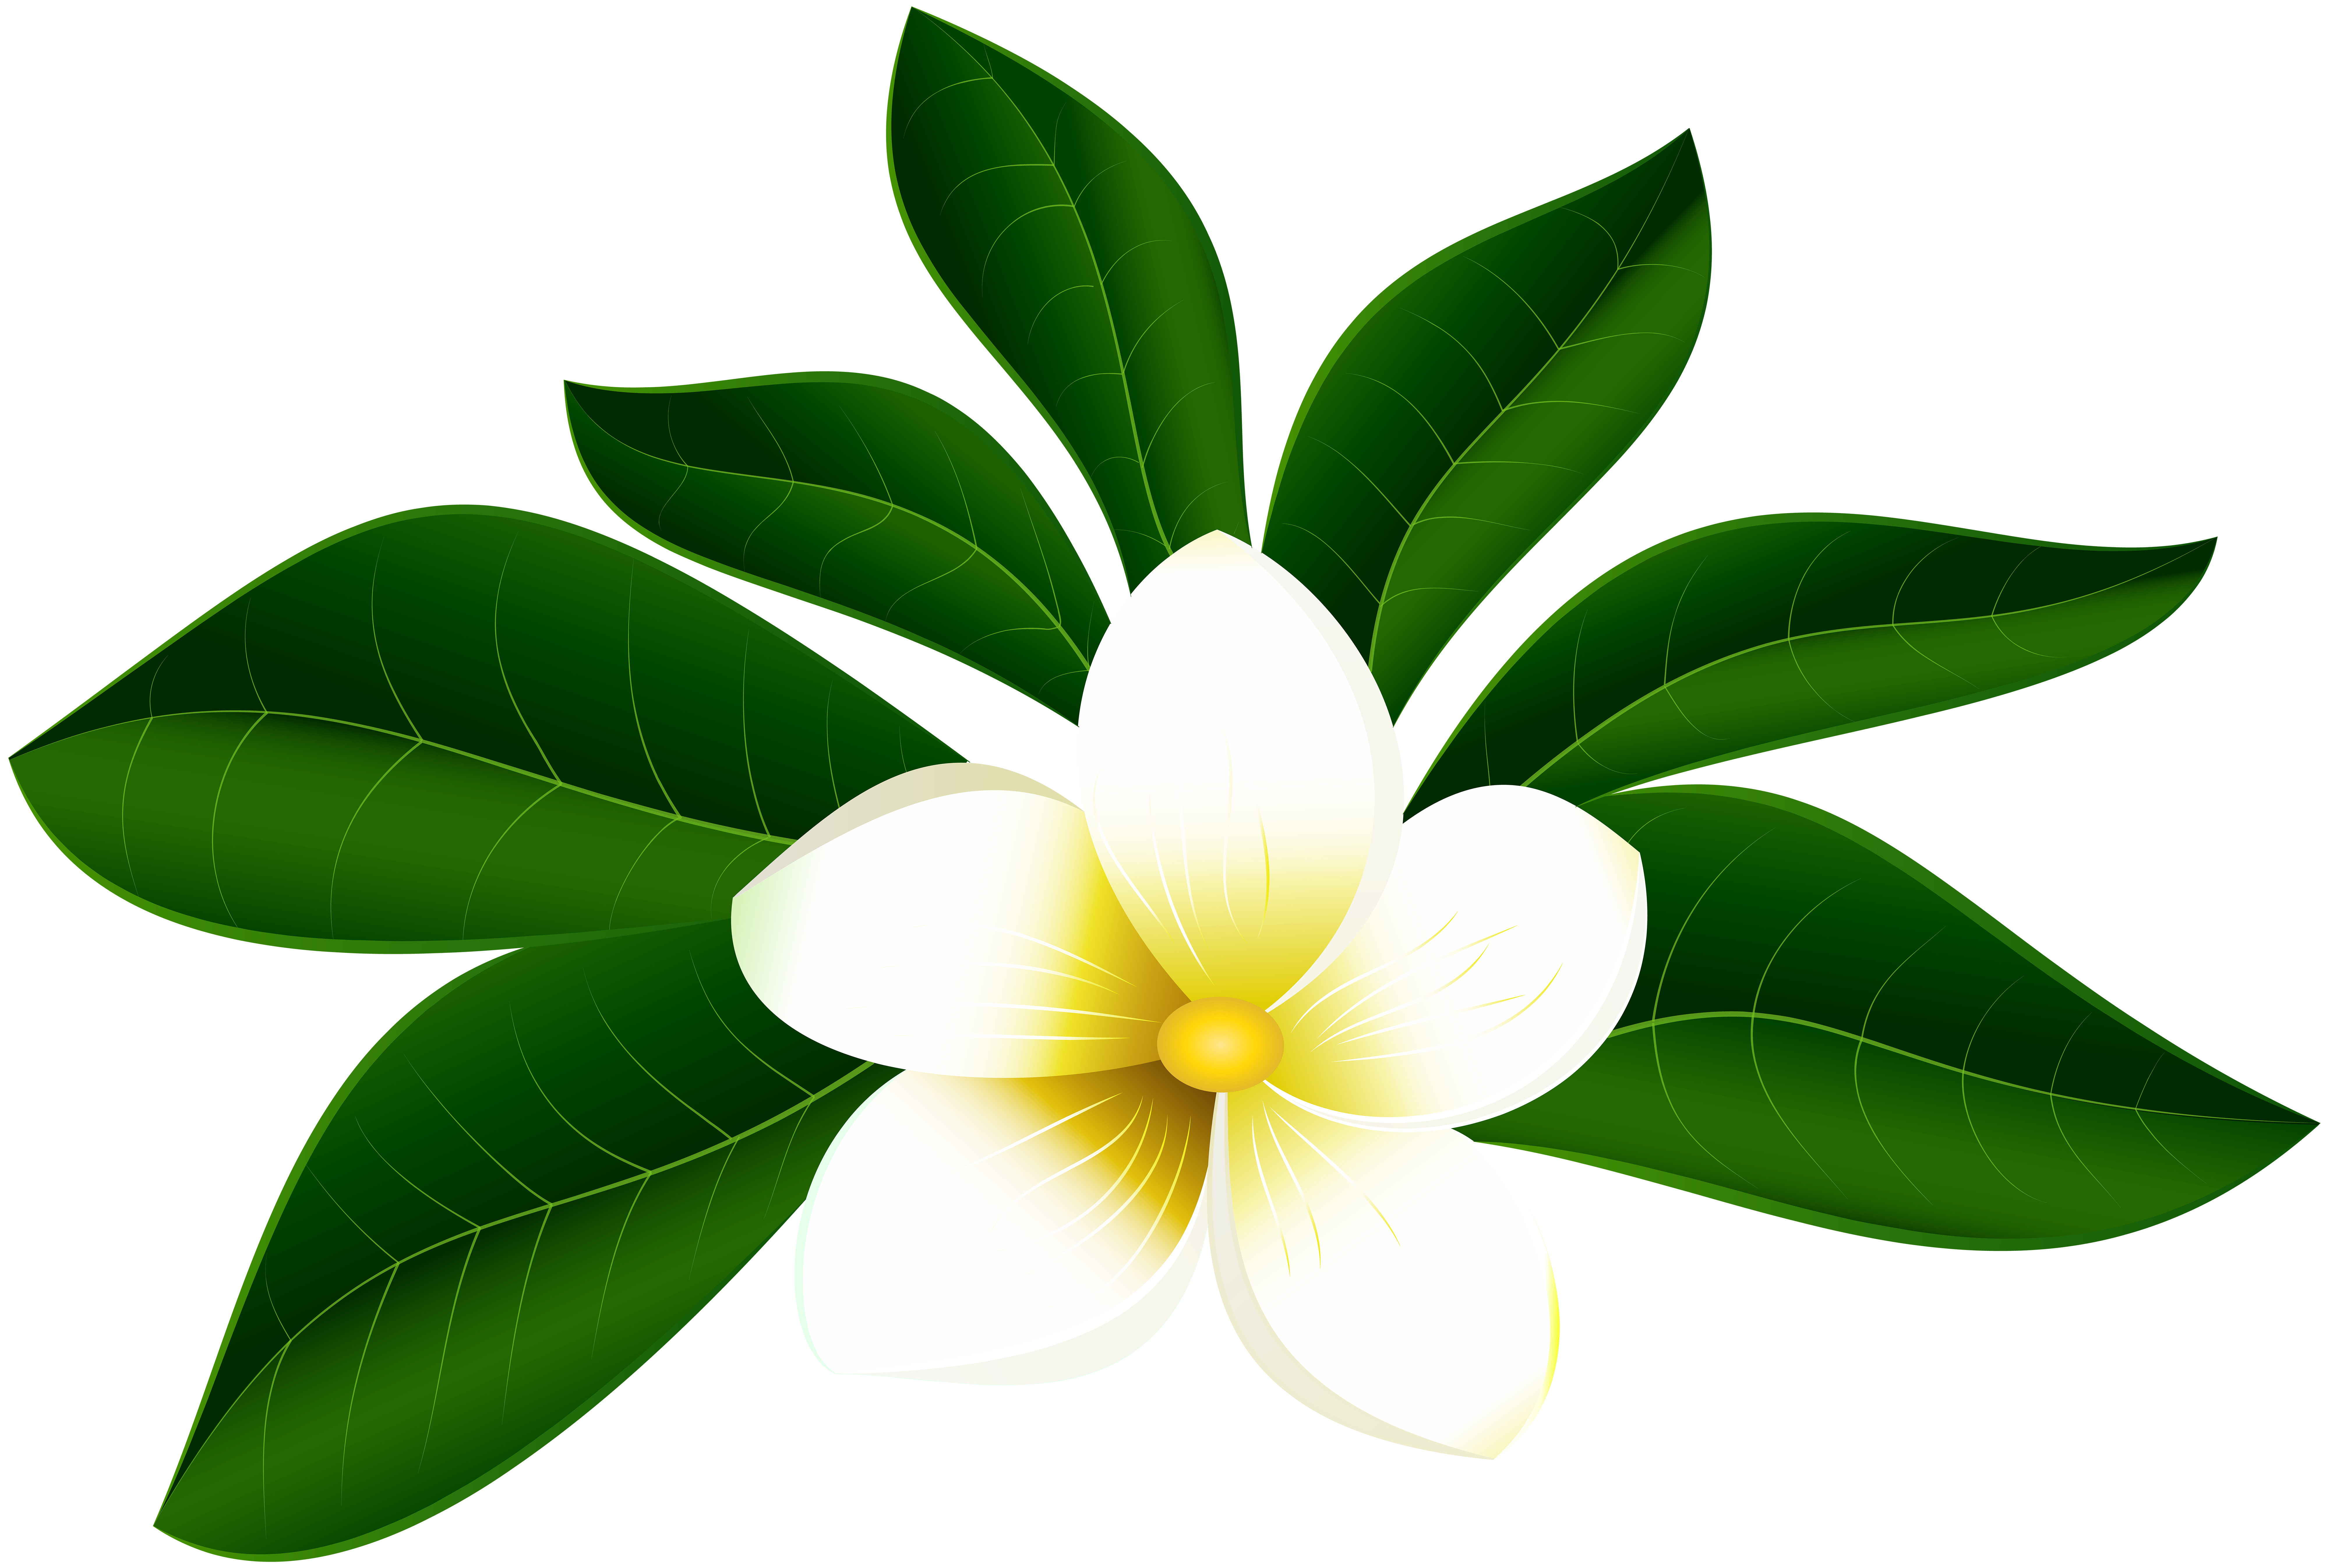 image freeuse download Clipart at getdrawings com. Tropical drawing exotic flower